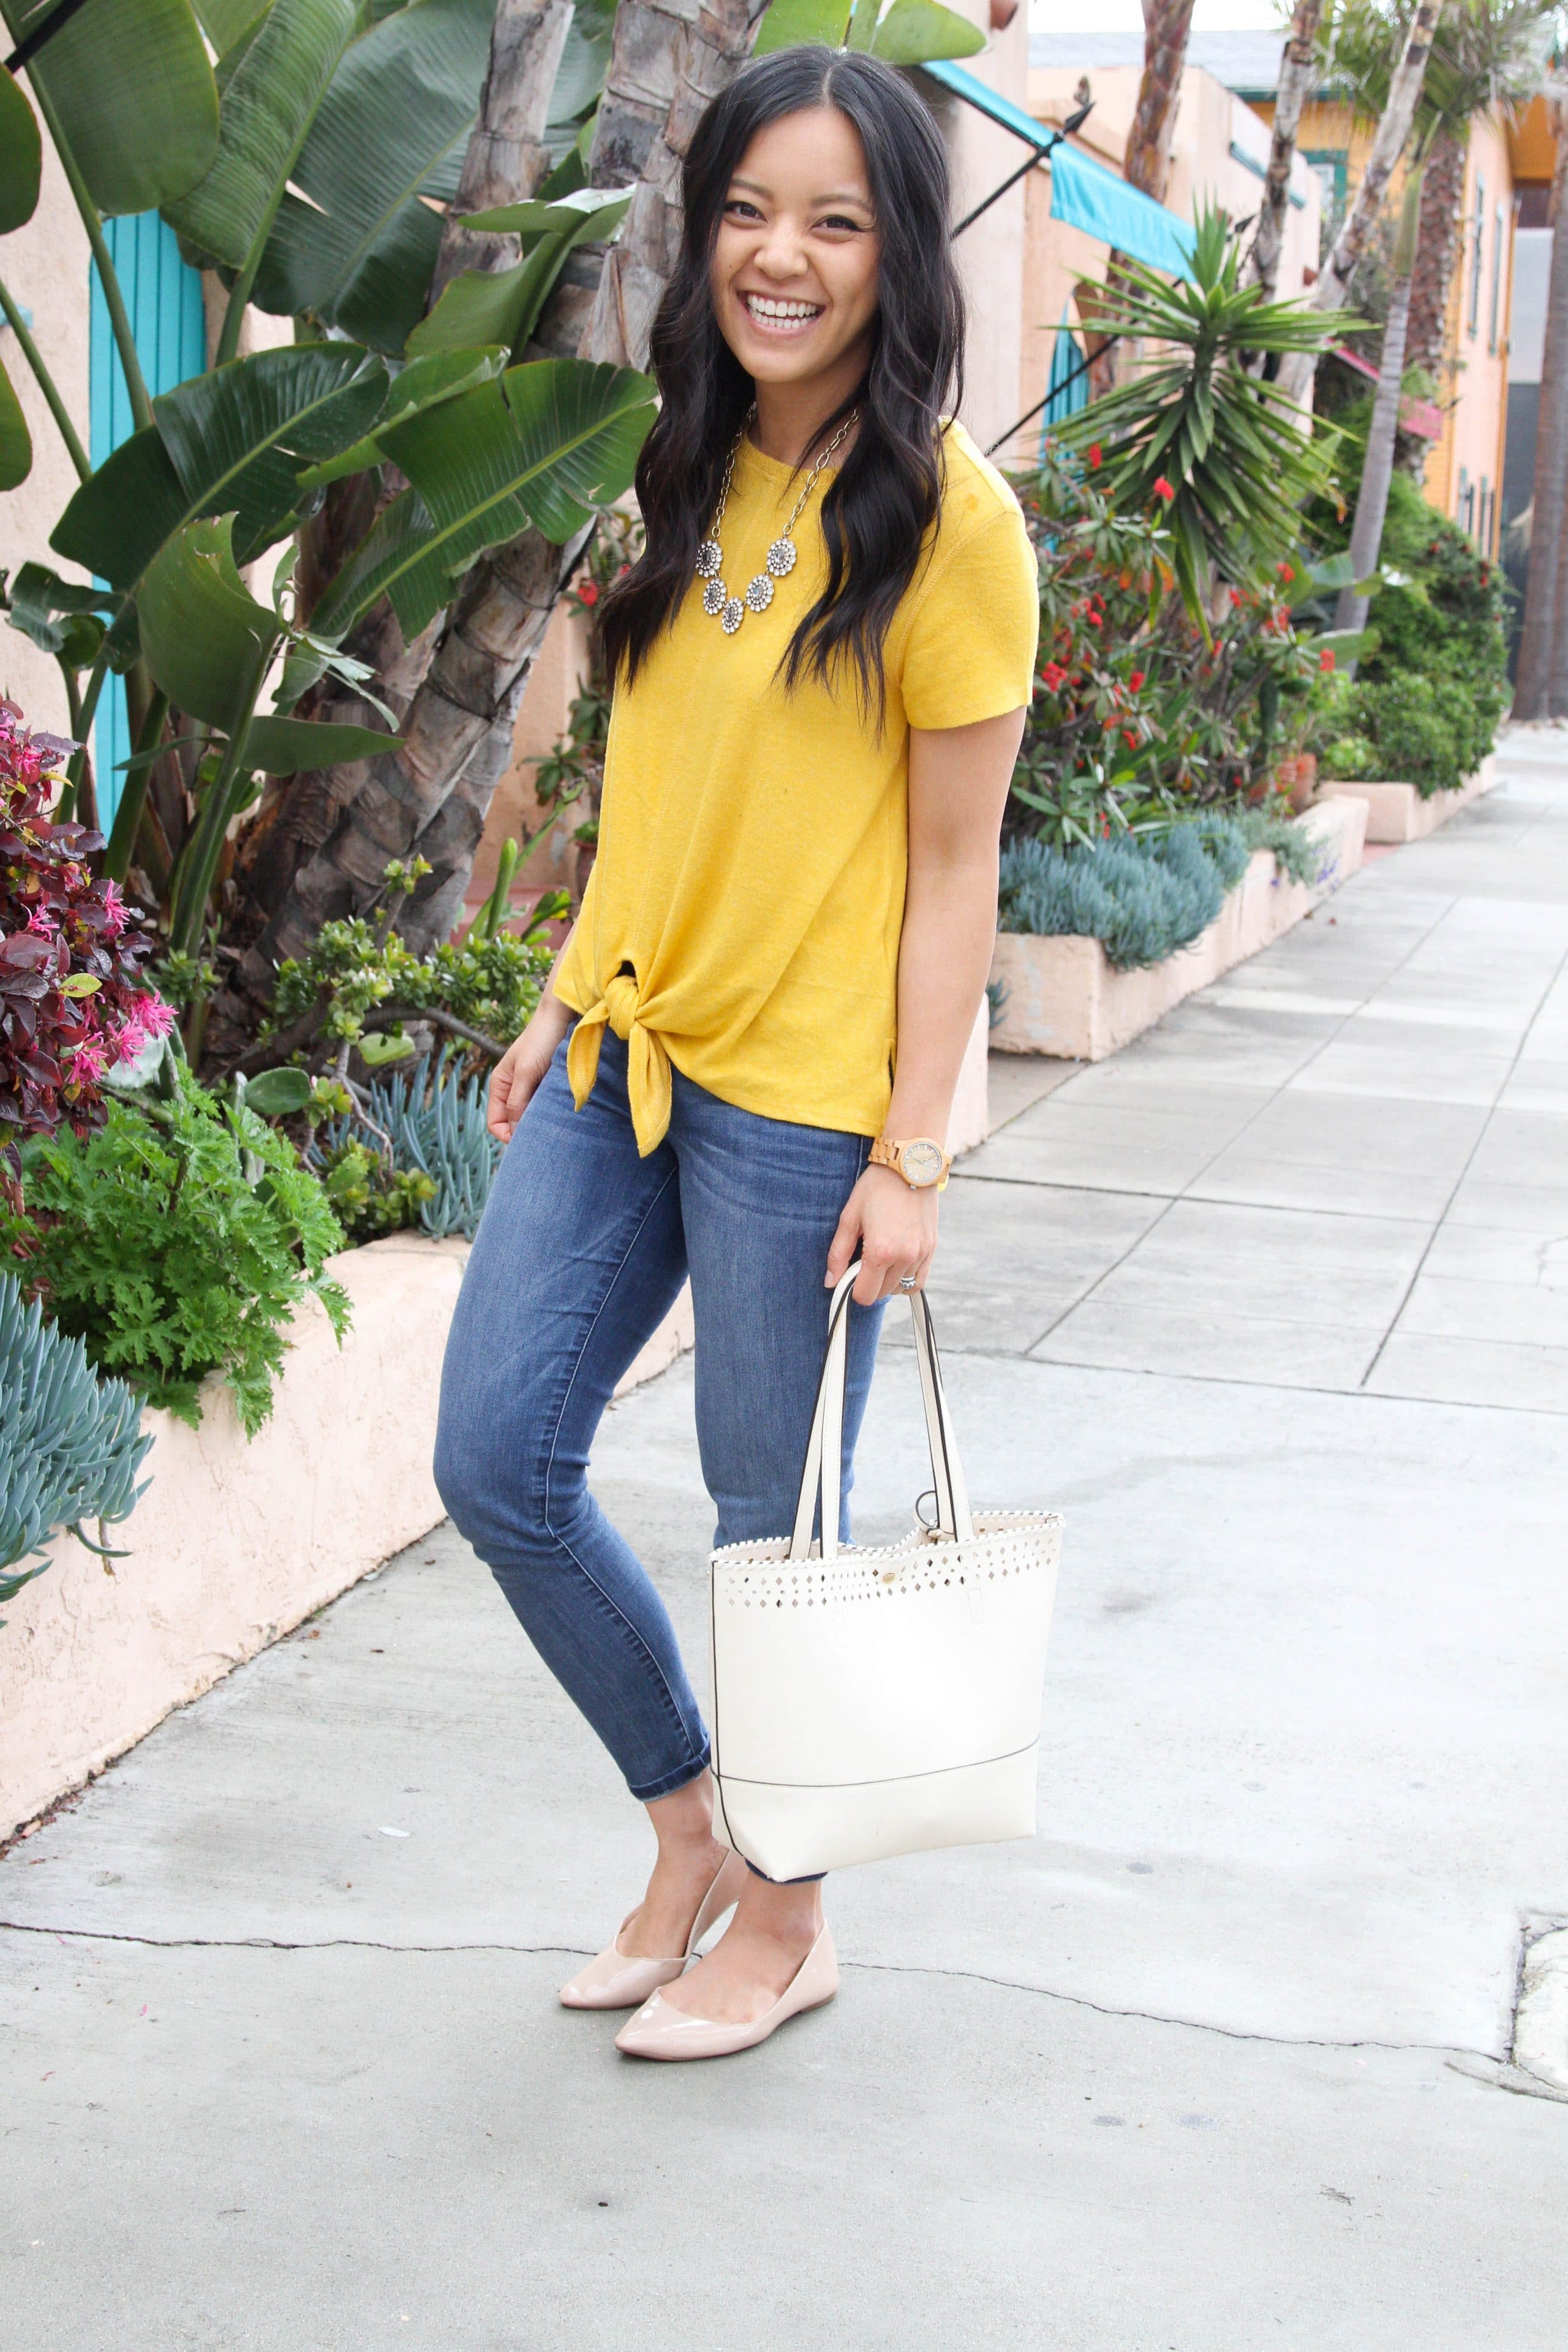 Yellow tie top + Light jeans + blush flats + white tote + statement necklace